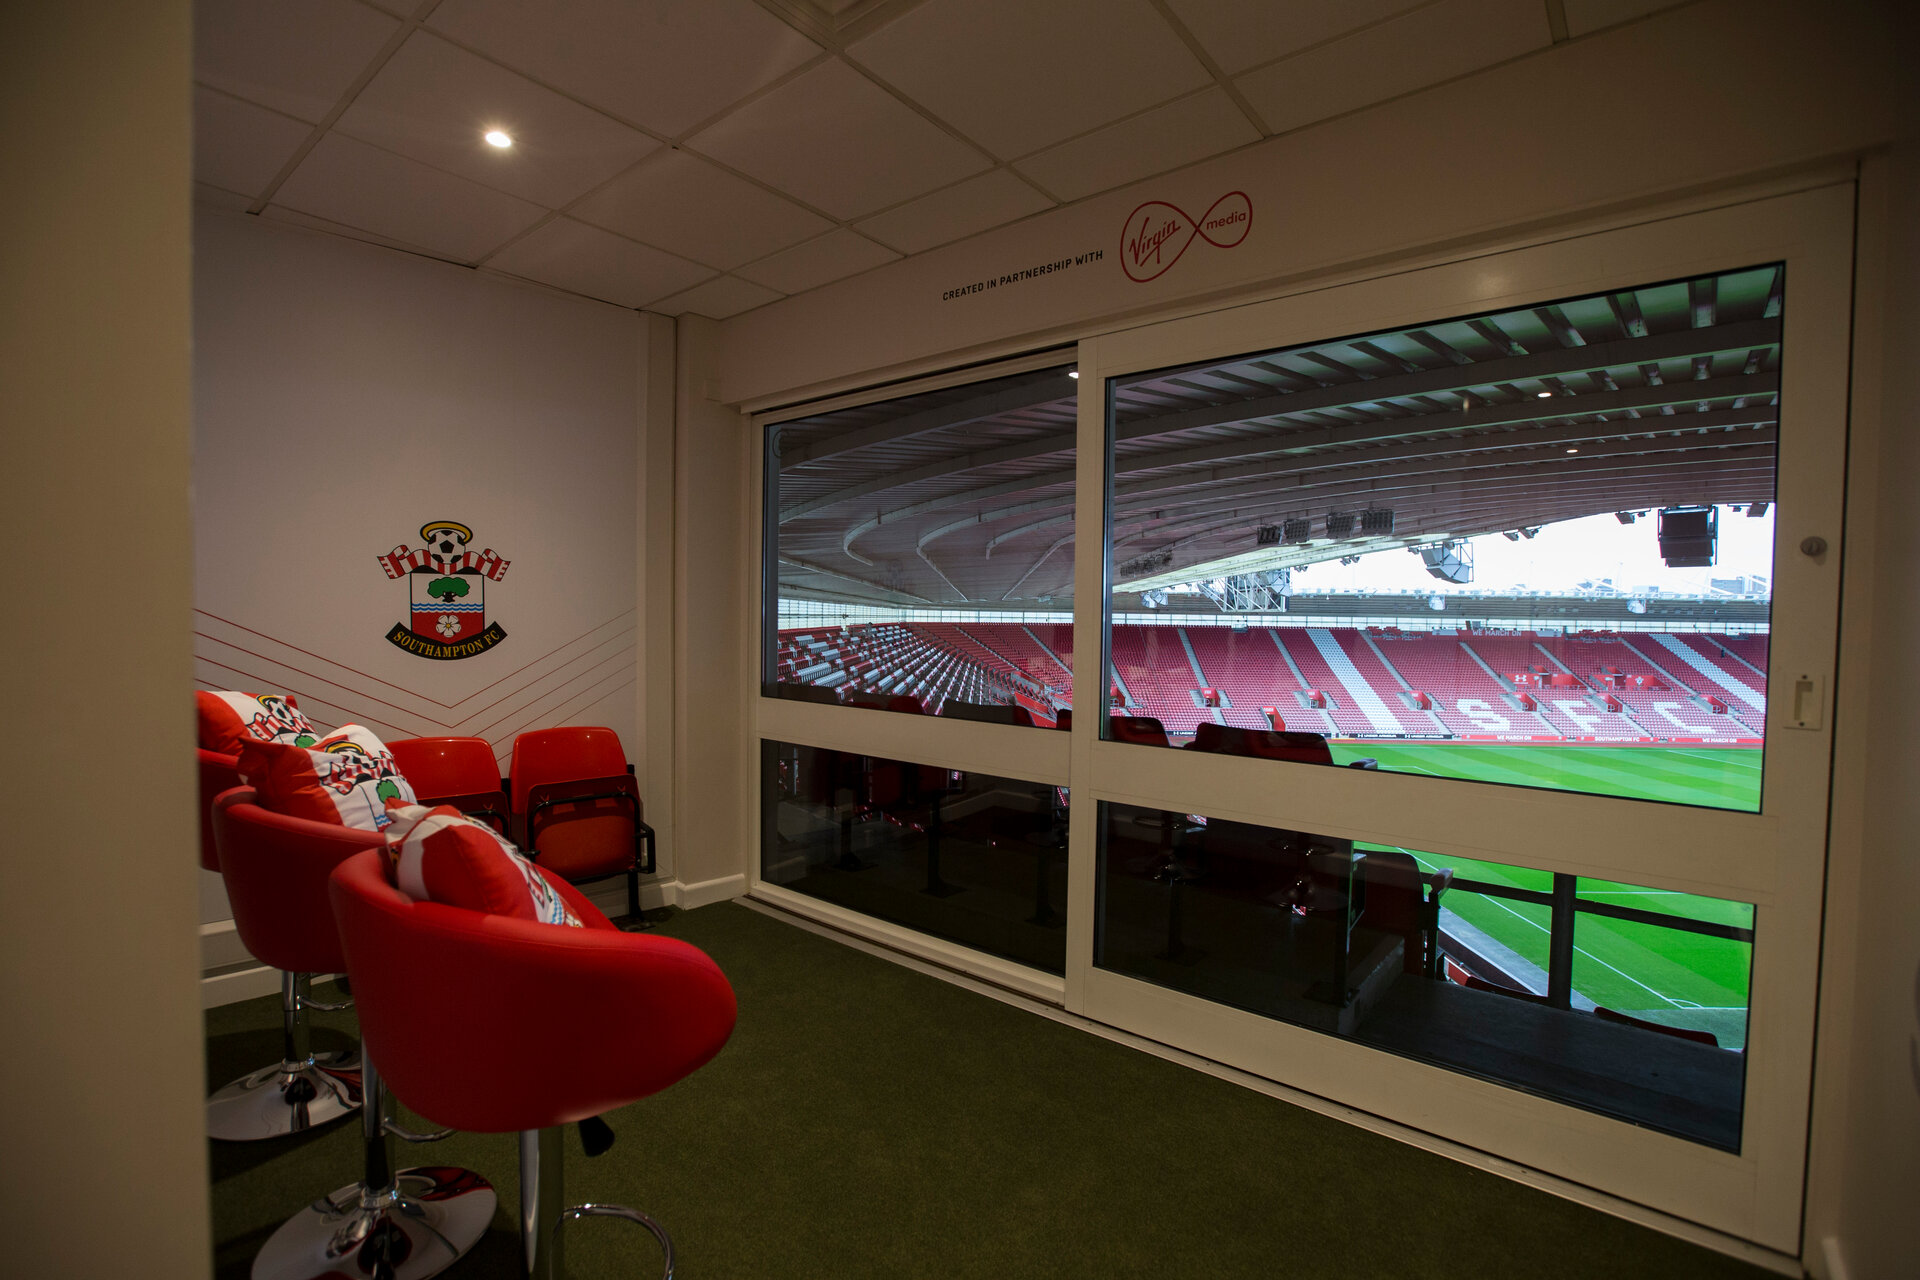 SOUTHAMPTON, ENGLAND - SEPTEMBER 08: Sensory Room - St Mary's Stadium September 8, 2017 in Southampton, England. (Photo by James Bridle/Southampton FC via Getty Images)